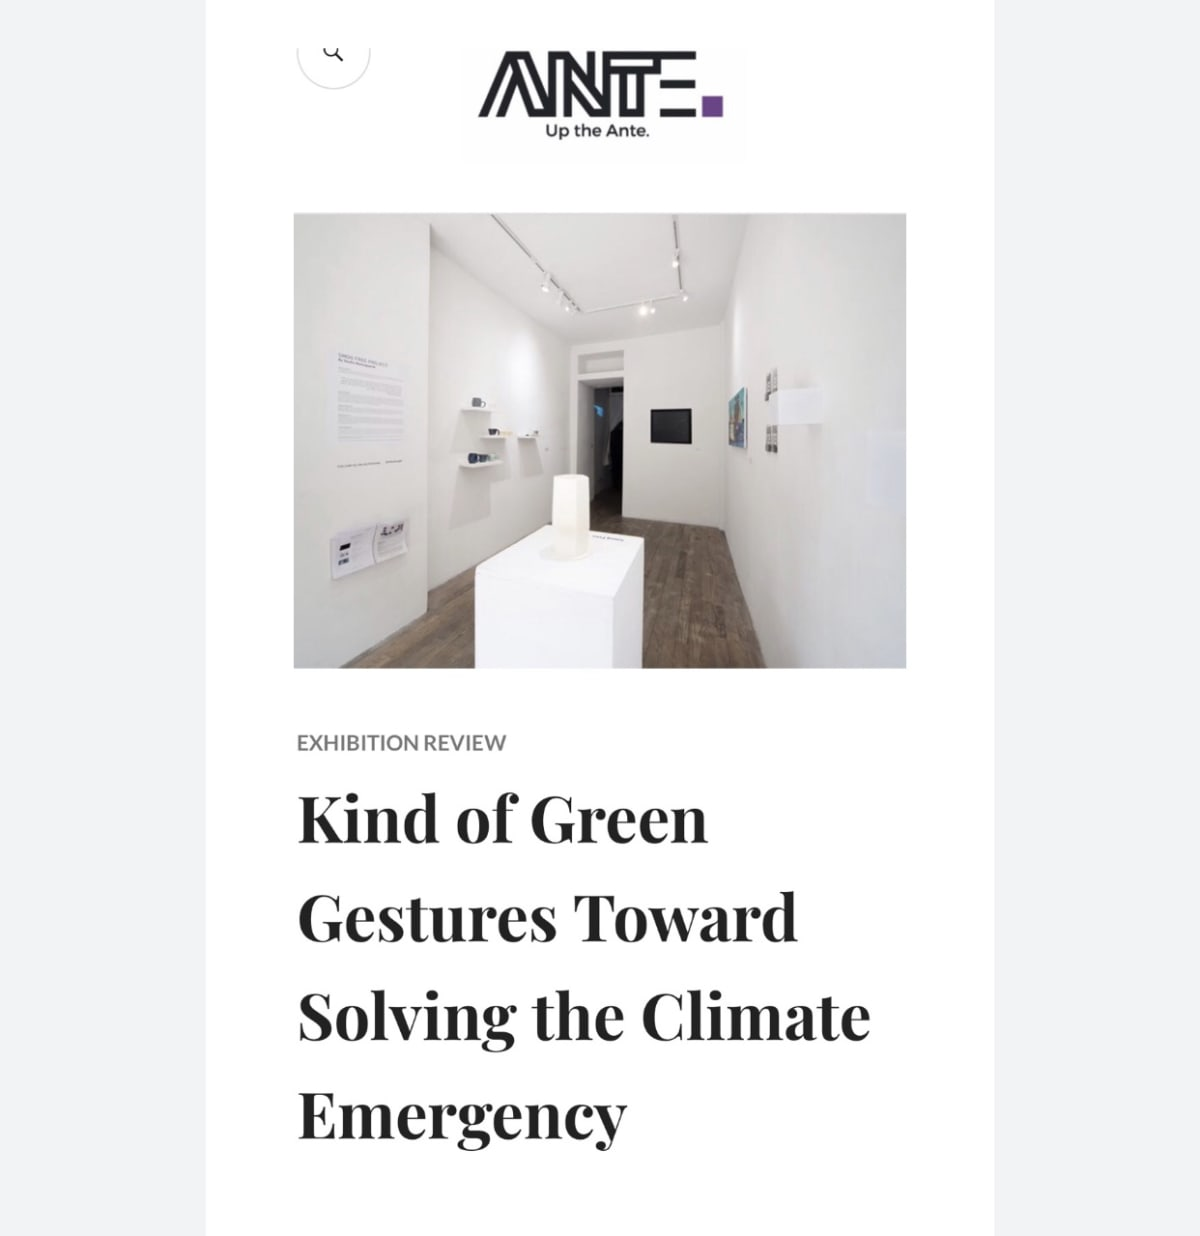 Kind of Green Gestures Toward Solving the Climate Emergency